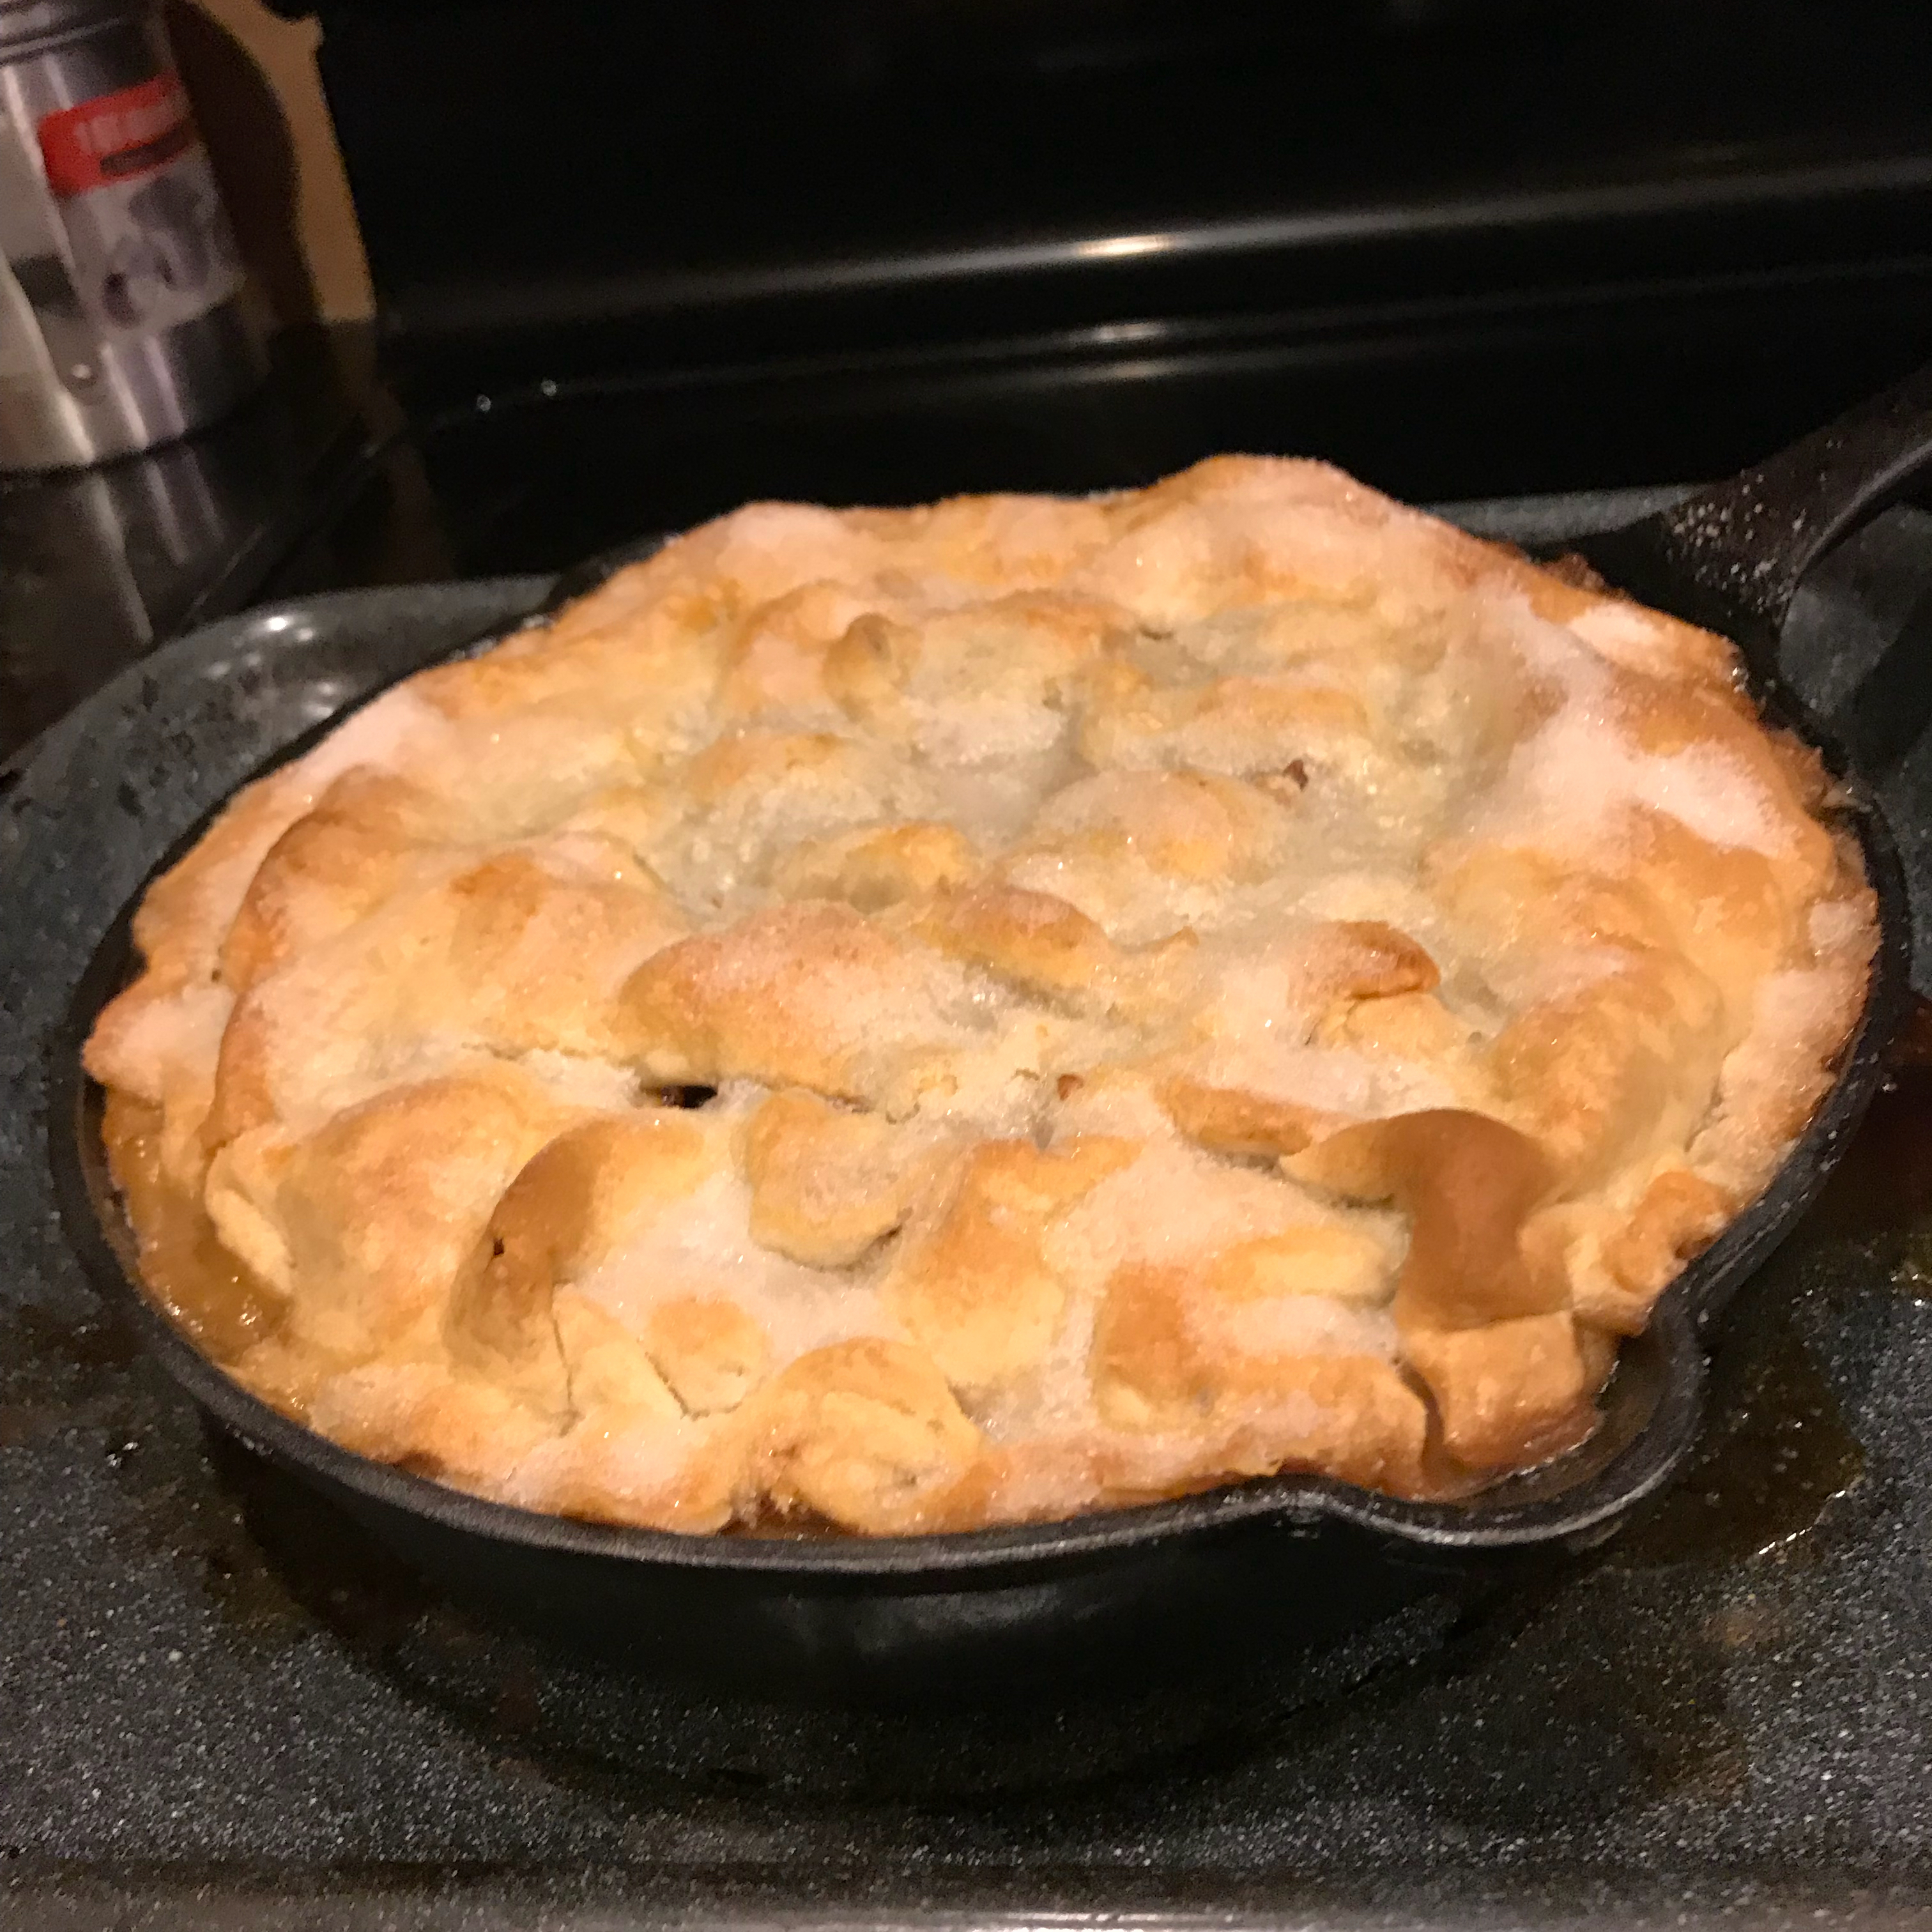 Grandma's Iron Skillet Apple Pie